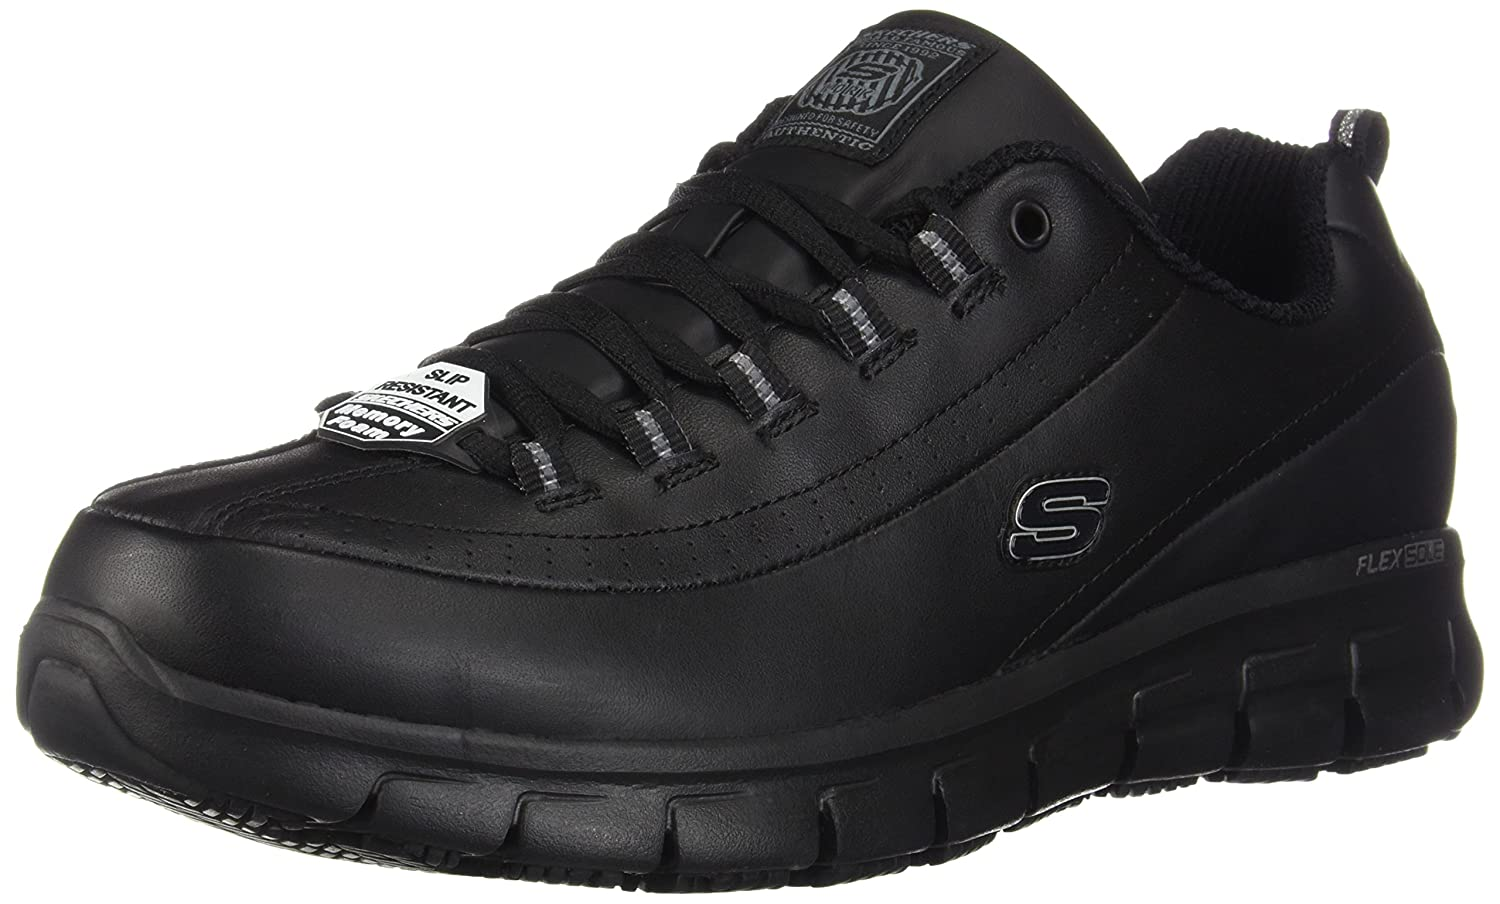 Skechers Women's Sure Track Trickel Slip Resistant Work Shoes 76550